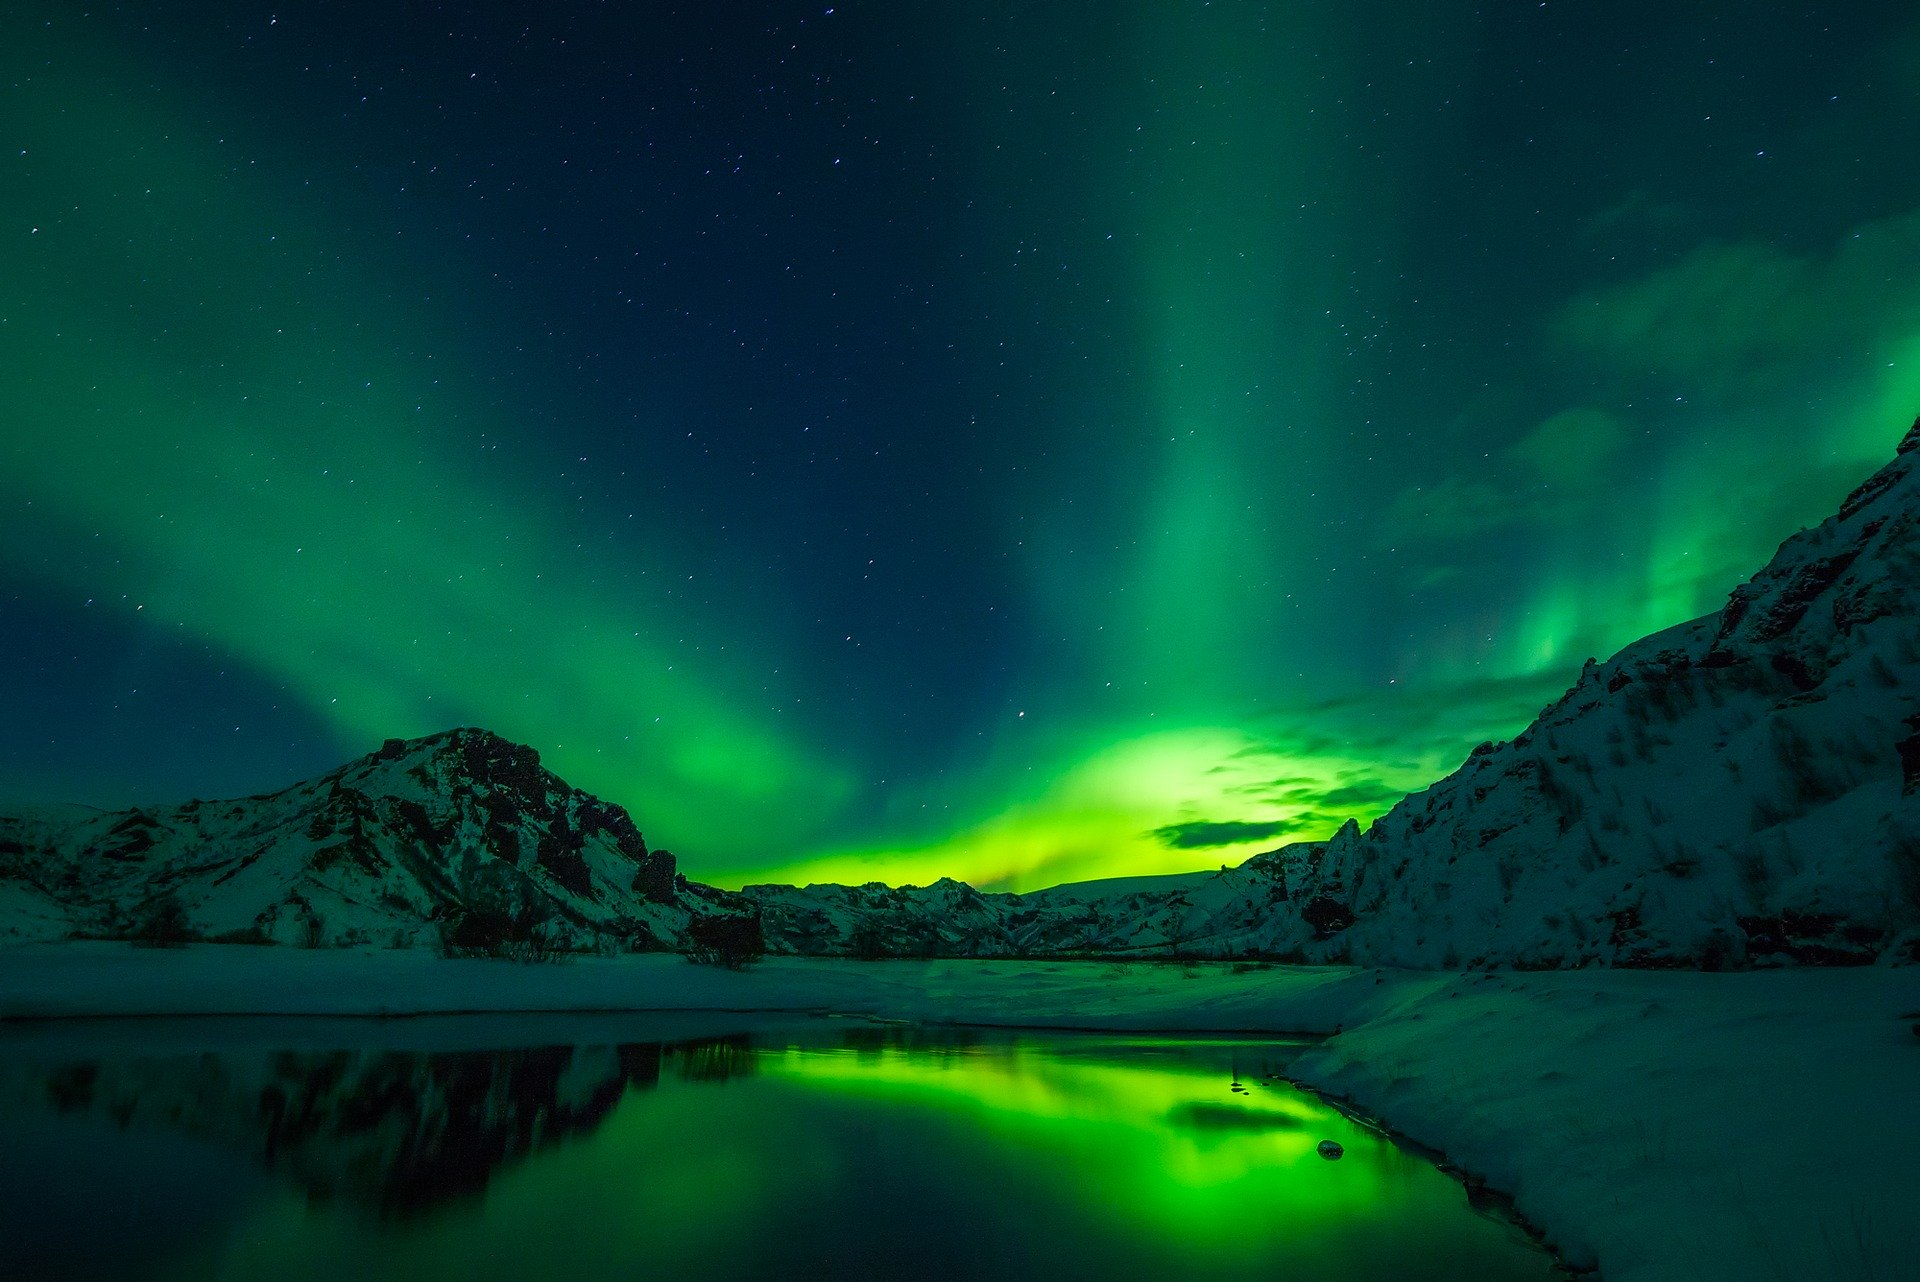 Green northern lights in iceland at night, lake one the foreground, mountains on the background